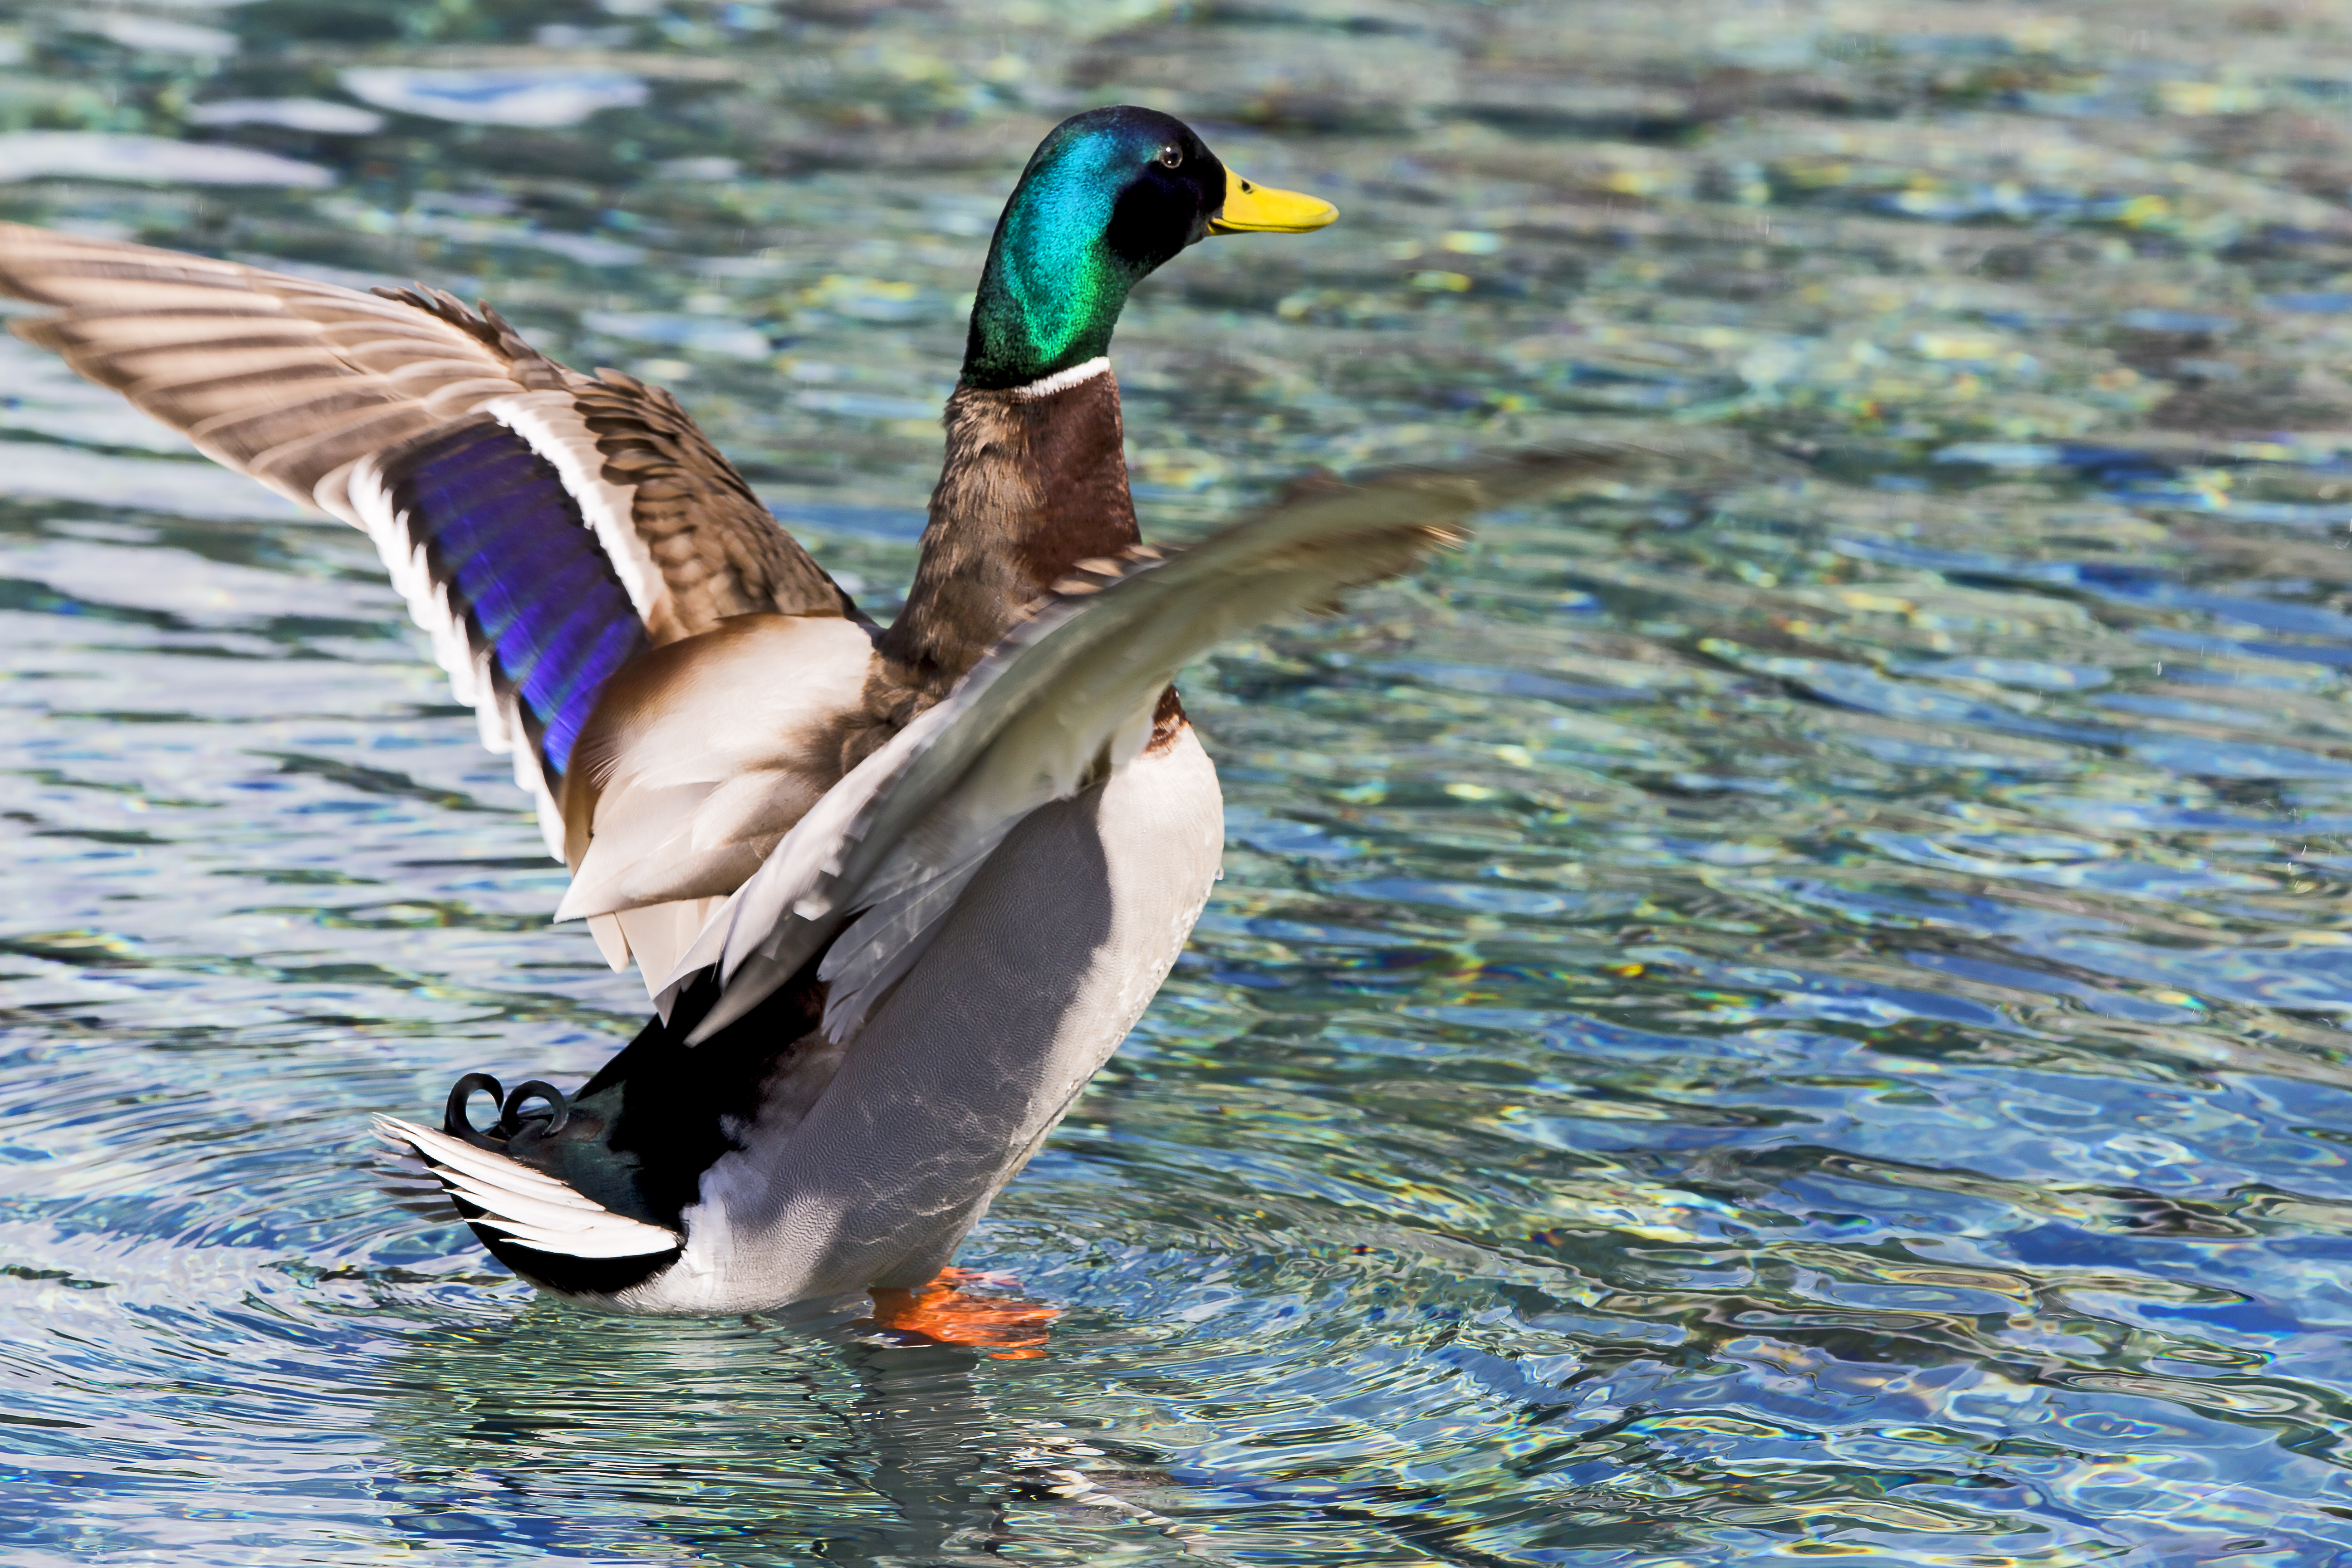 The Duck That Walks on Water